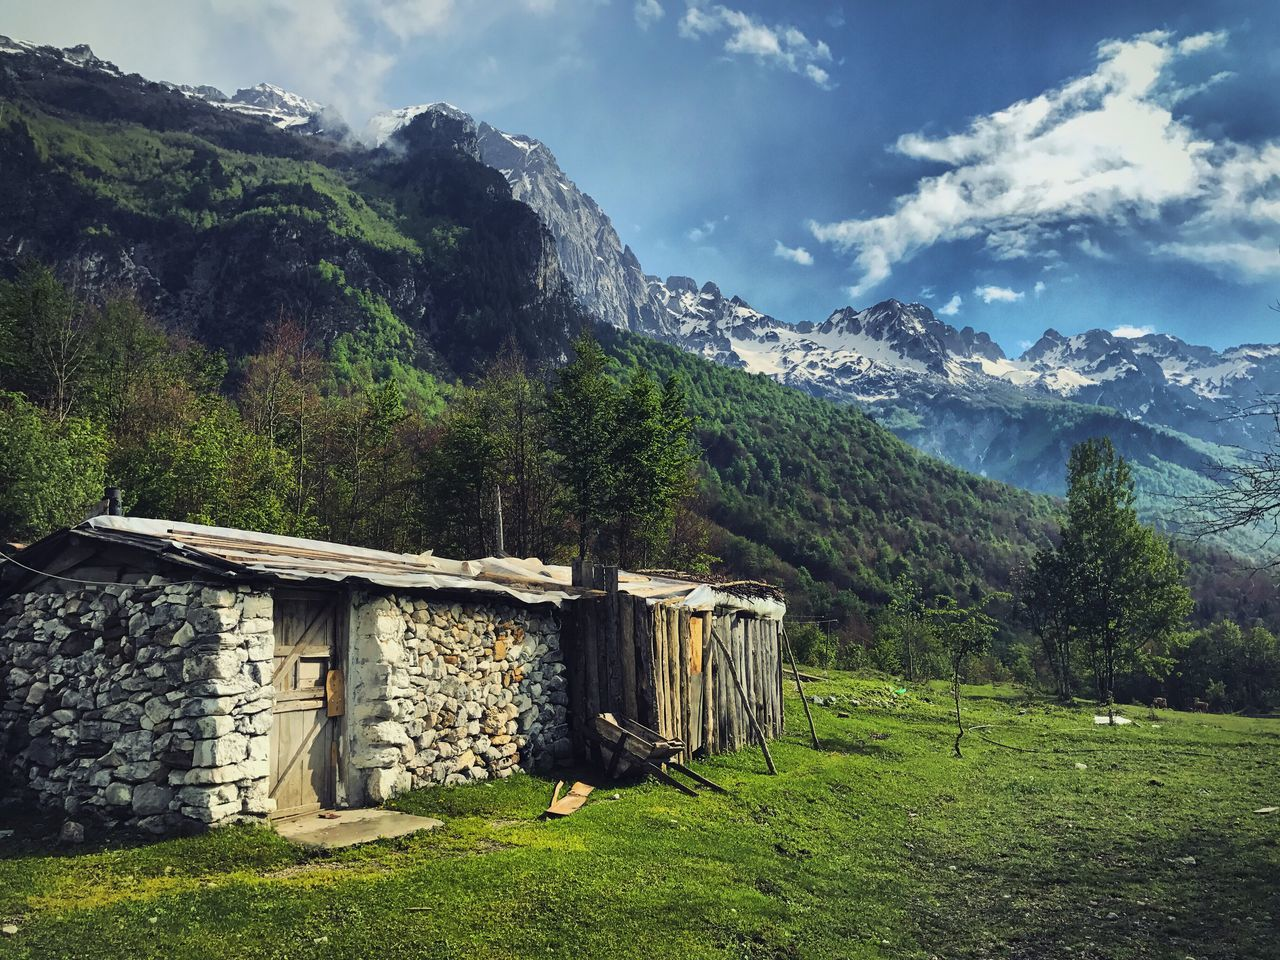 Albania Natute Mountain Nationalpark Albanian View Grass Day Outdoors Tree Green Color No People Beauty In Nature Sky Nature Built Structure Architecture Building Exterior Scenics Tranquility Landscape